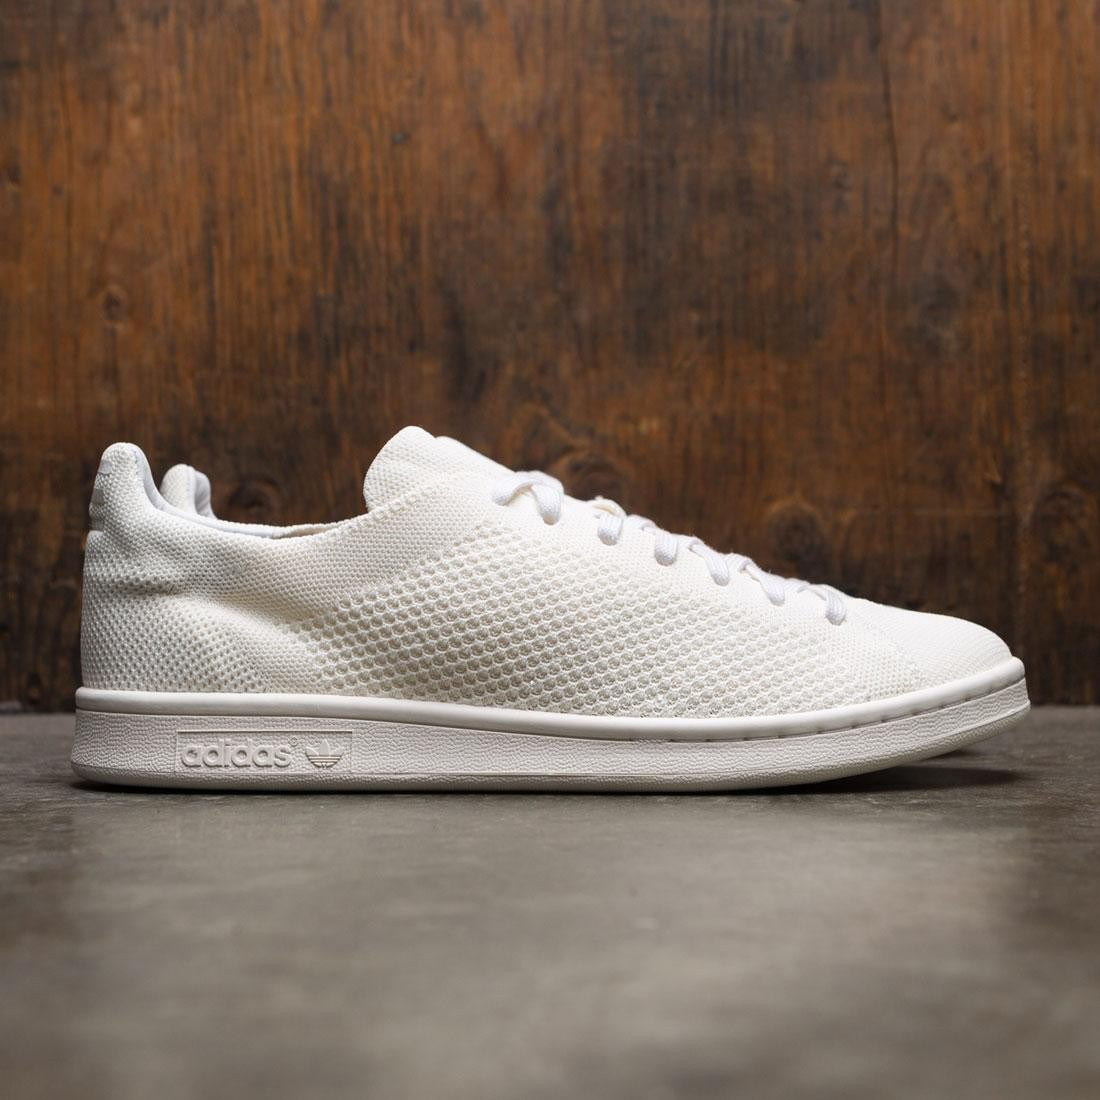 82d94cc1c76f Adidas x Pharrell Williams Men Hu Holi Stan Smith BC white cream white  footwear white